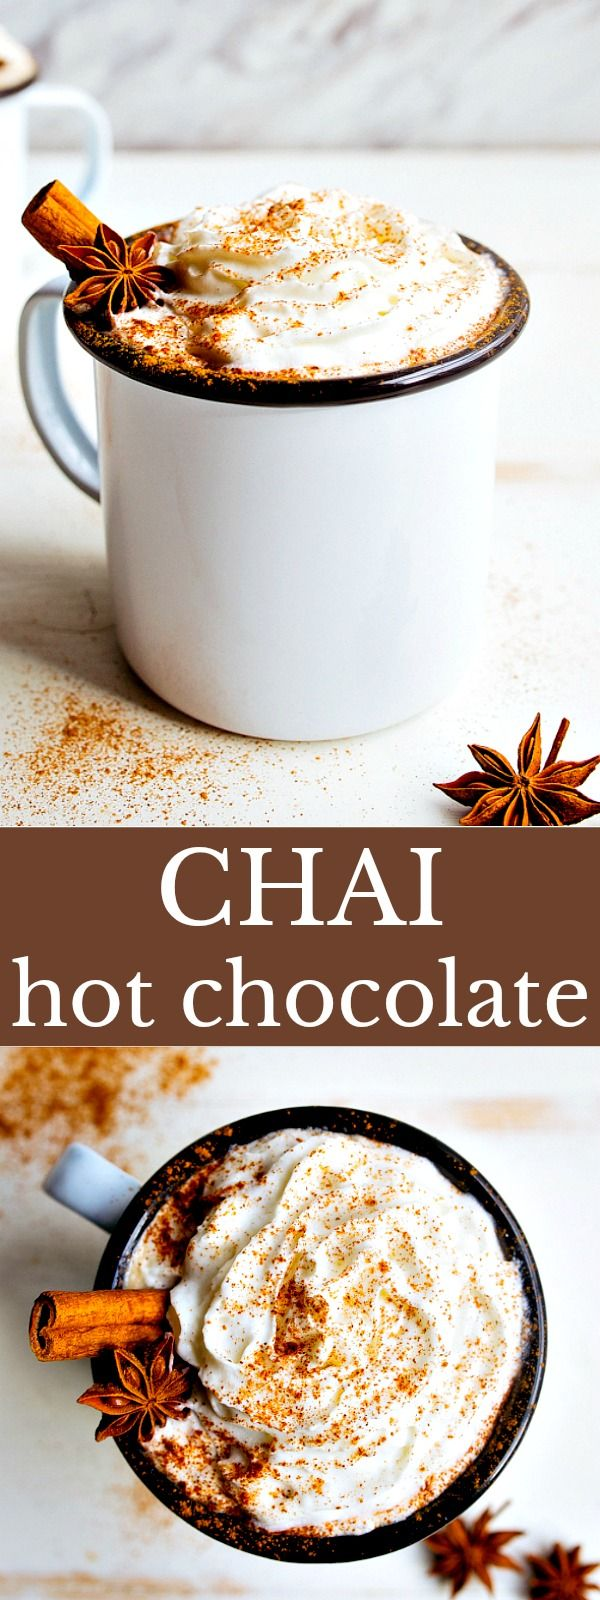 Chai Hot Chocolate via @dessertfortwo